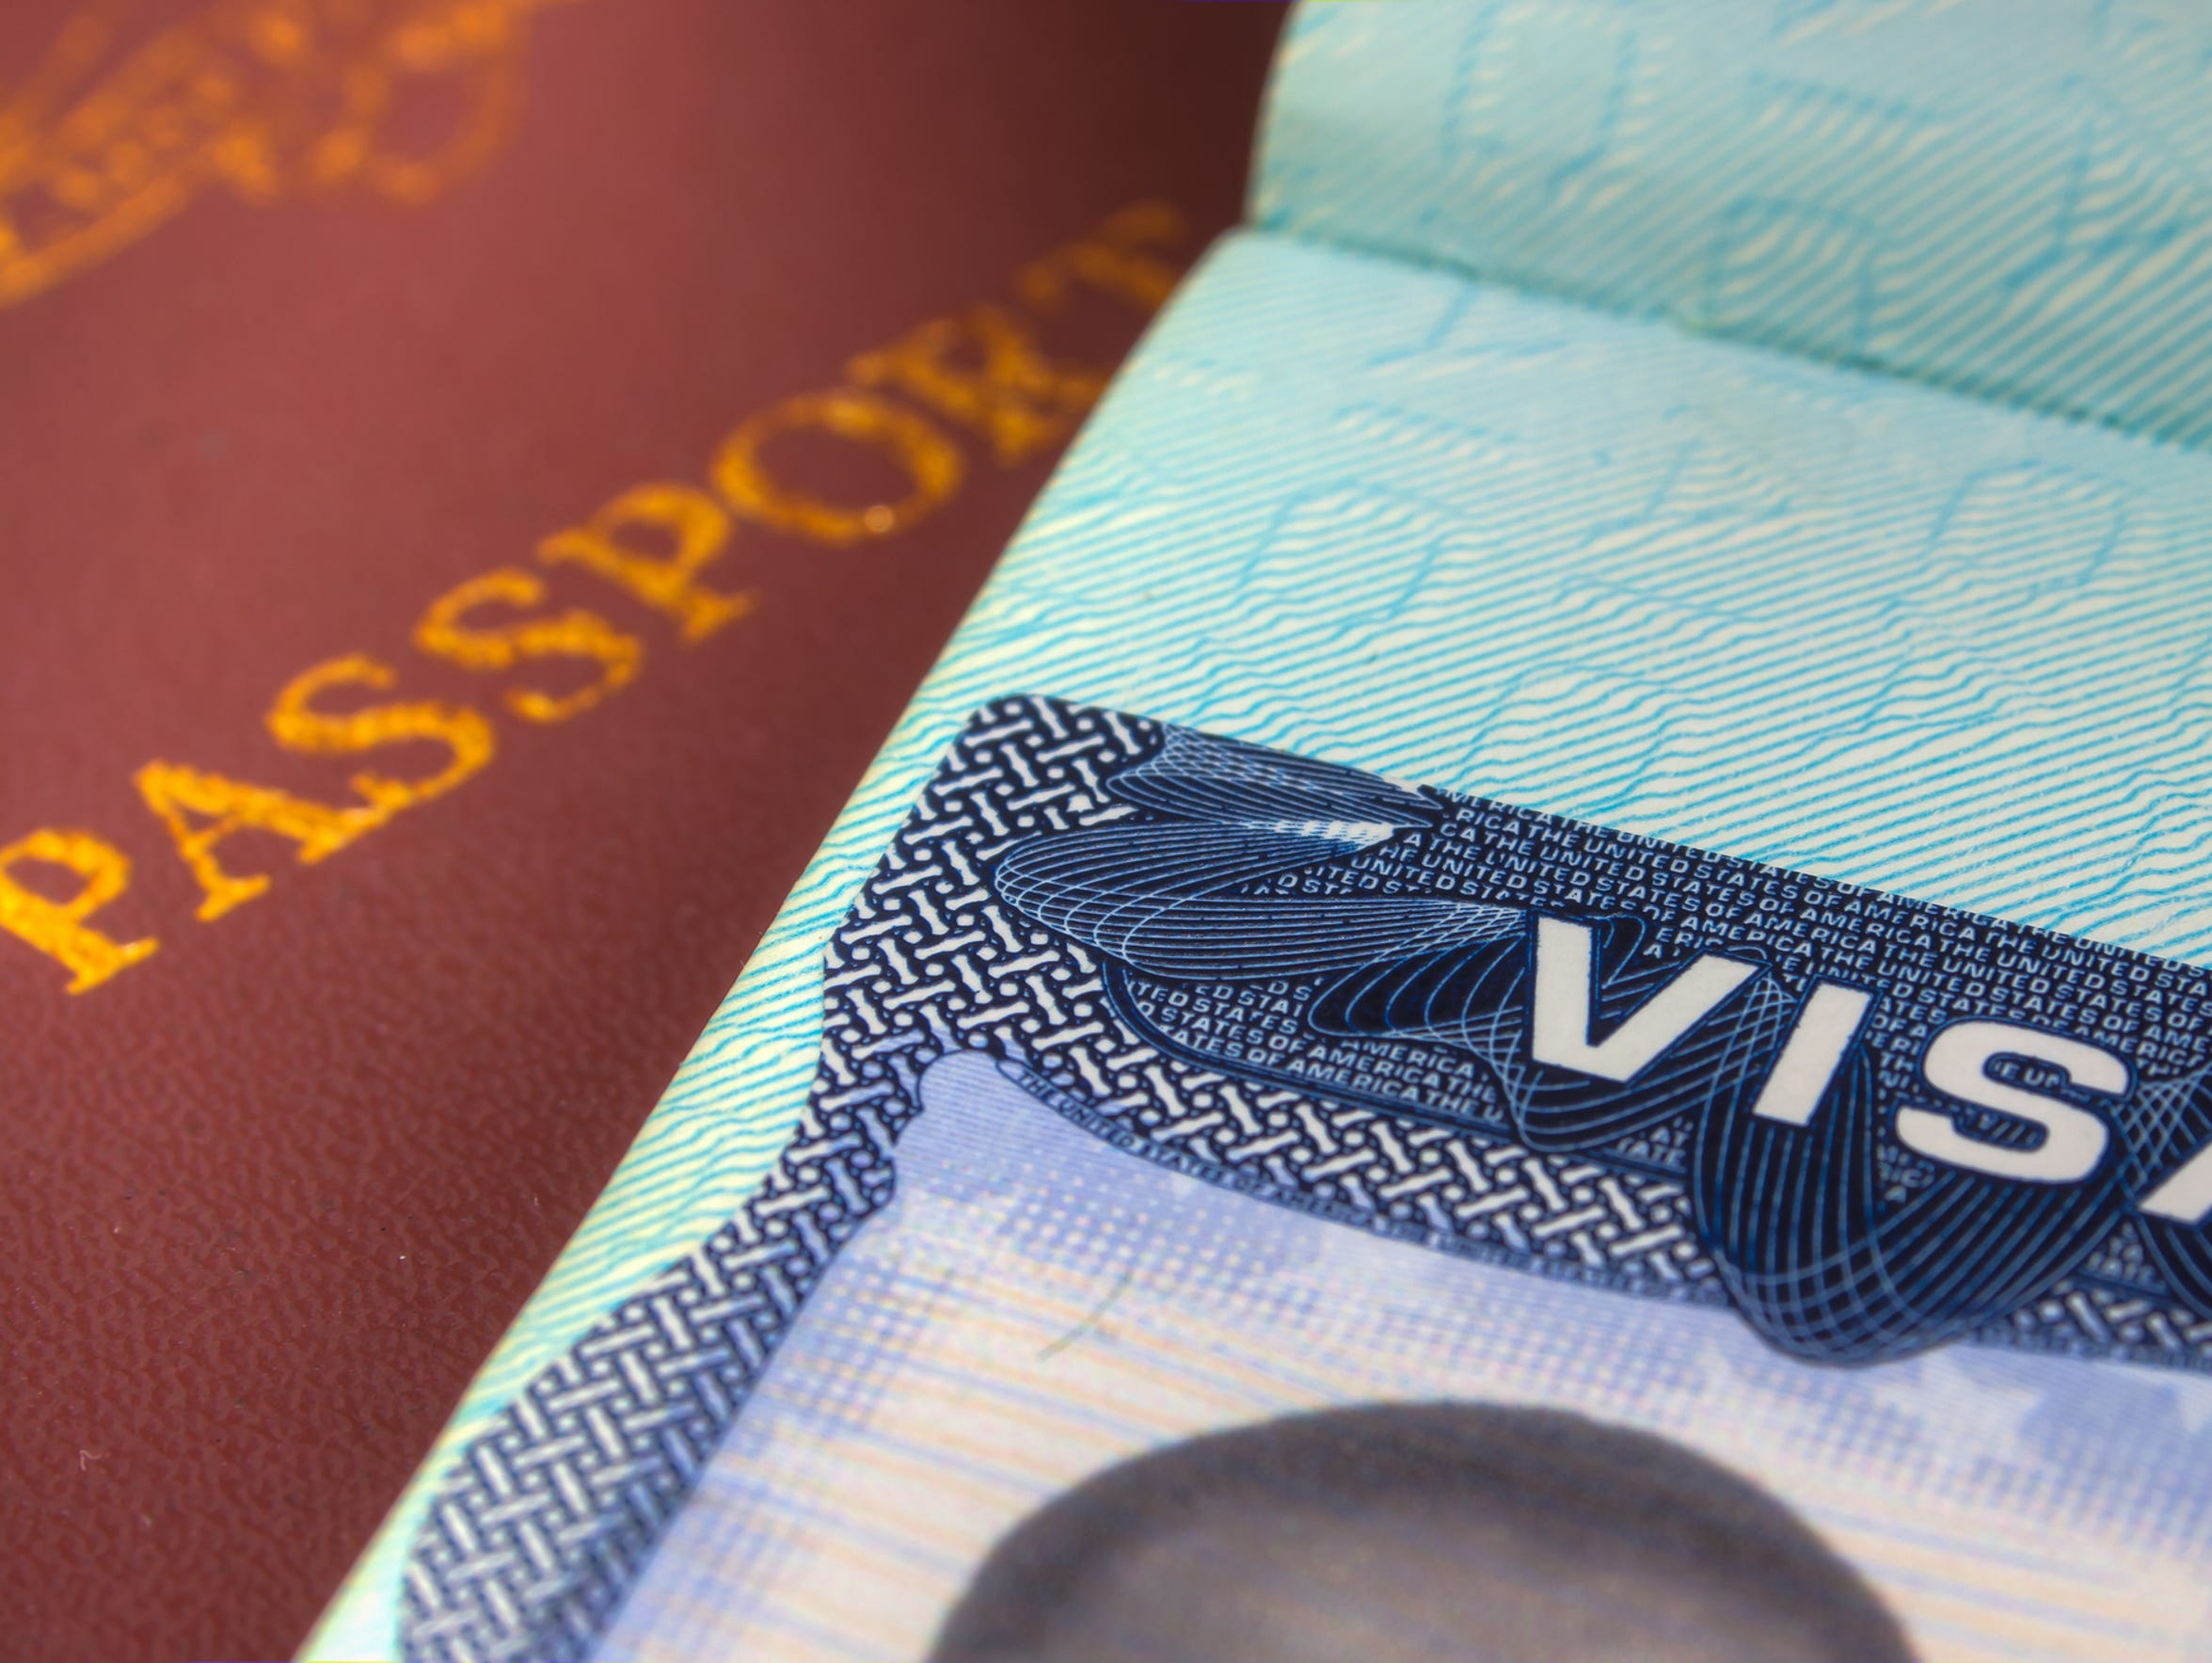 Be sure to determine the requirements for a passport,